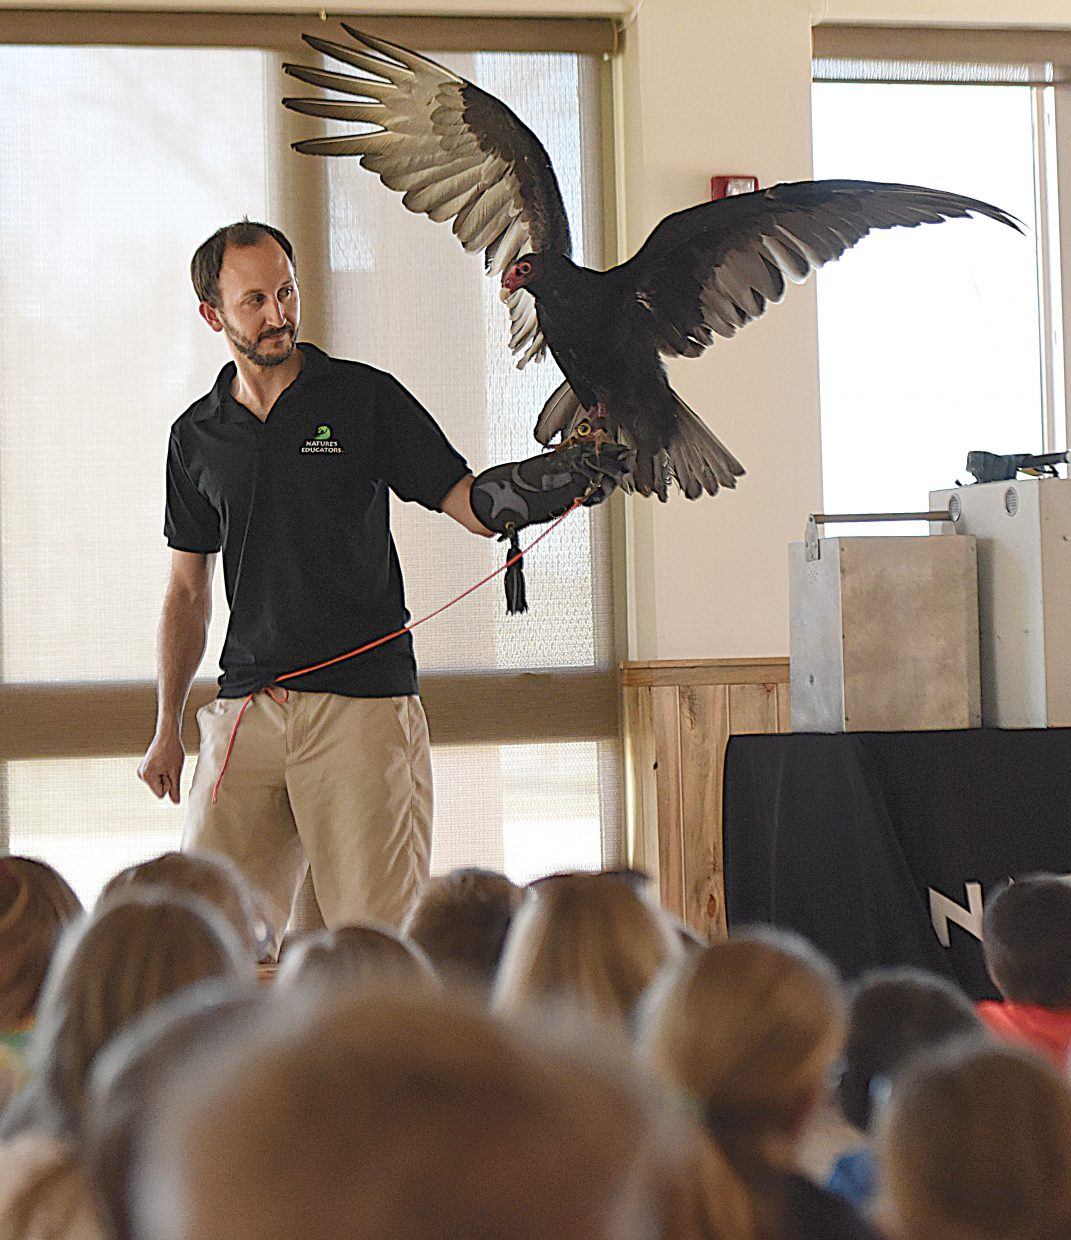 Evan Jaffe, a volunteer with Nature's Educators, holds a turkey vulture during a presentation at North Routt Community Charter School Friday morning. Nature's Educators also had presentations in Hayden and will be at the Bud Werner Memorial Library in Steamboat Springs from 9-10:30 a.m. today as part of Migratory Bird Day.